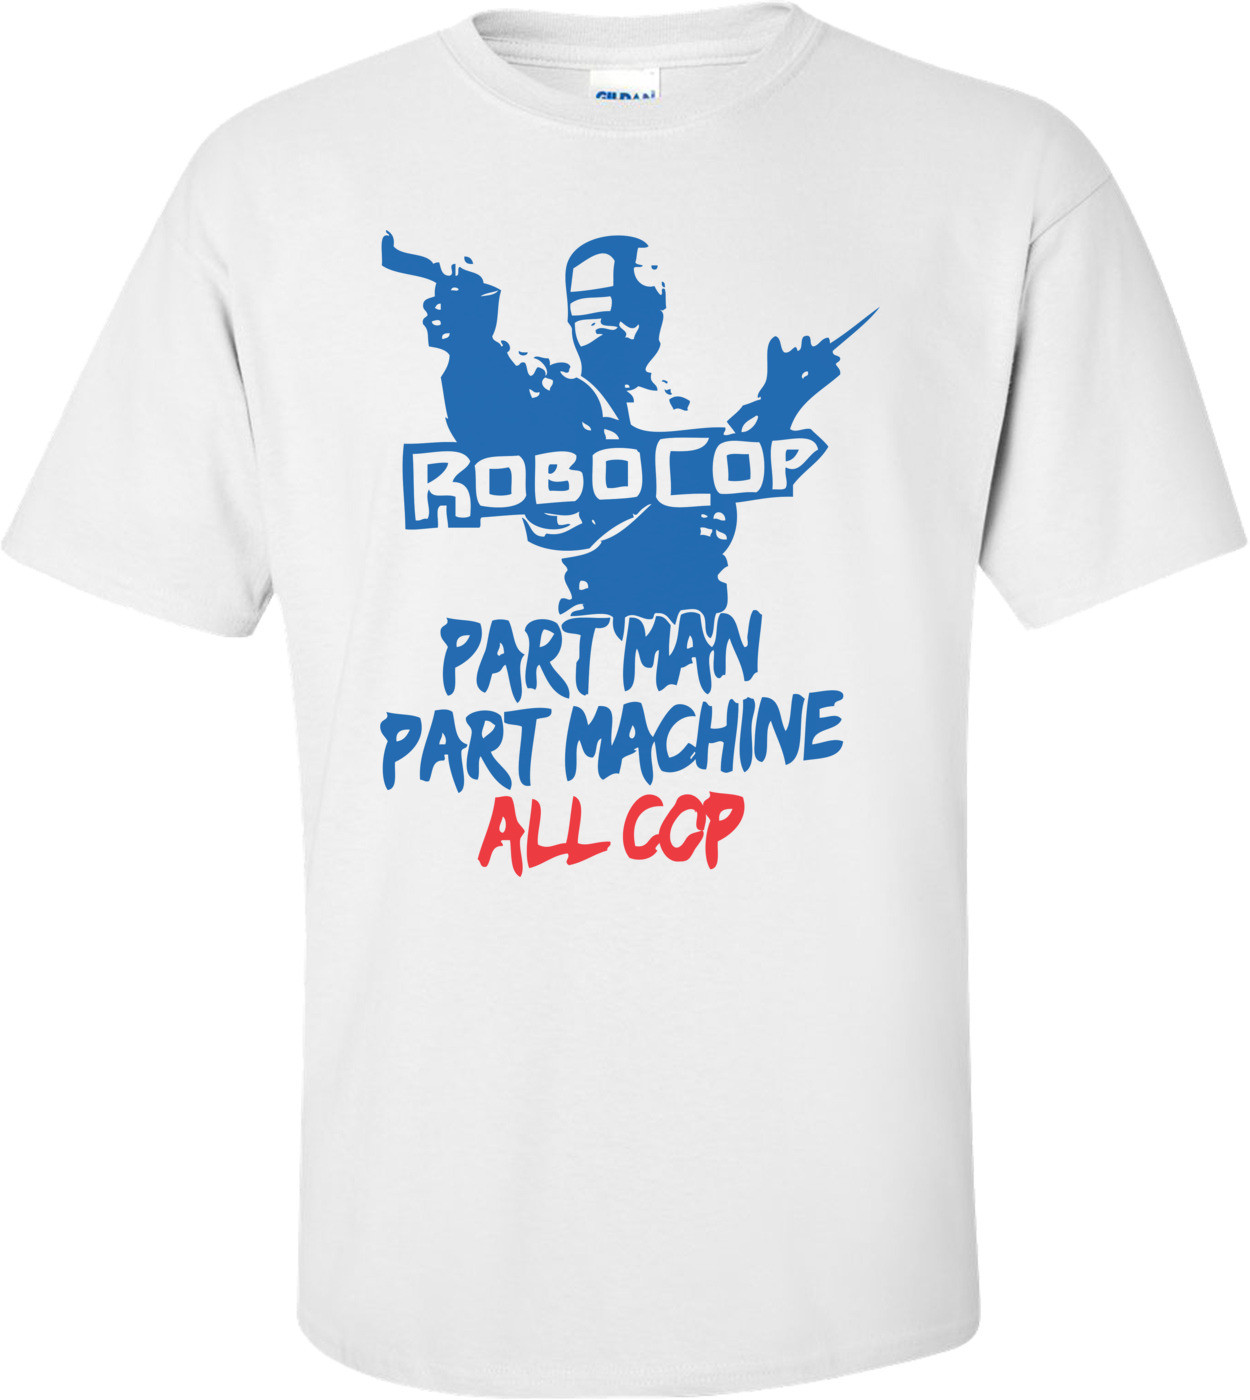 Robocop Part Man Part Machine All Cop T-shirt